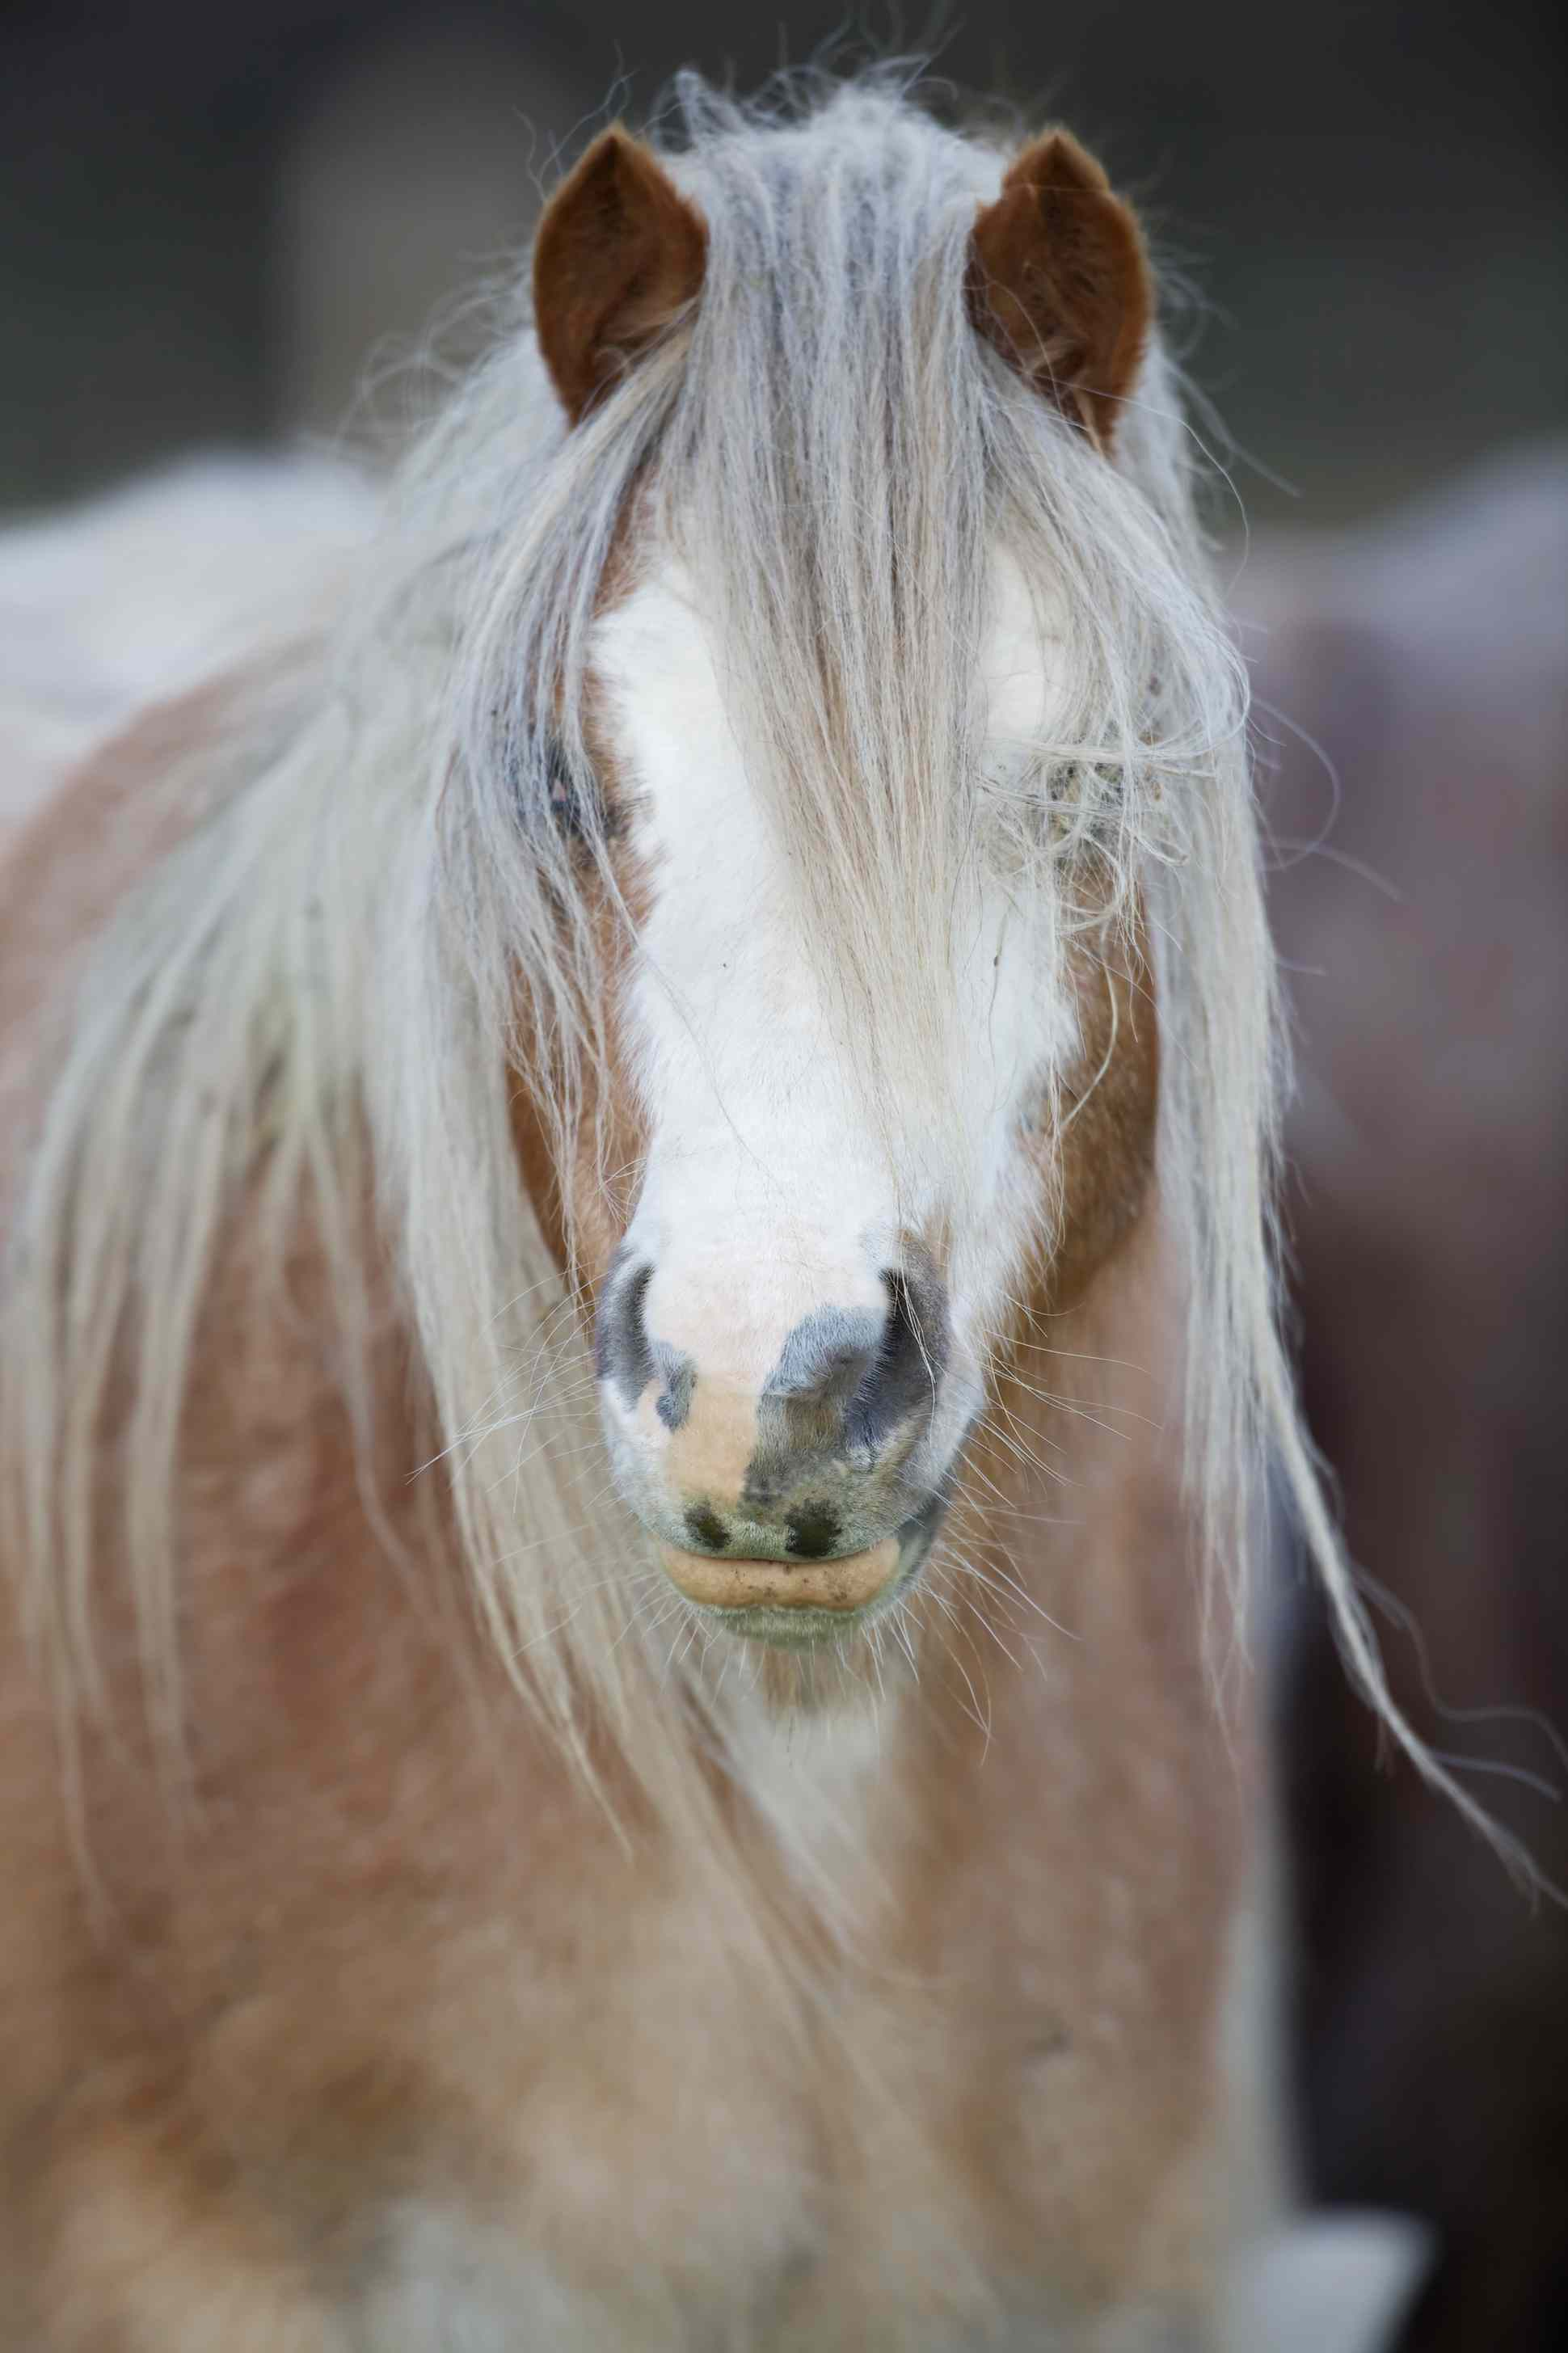 Welsh Mountain Pony (Equus ferus caballus) with long mane. Descendent of the ancient Celtic mountain pony which lived wild in the hills of Wales for centuries. UK